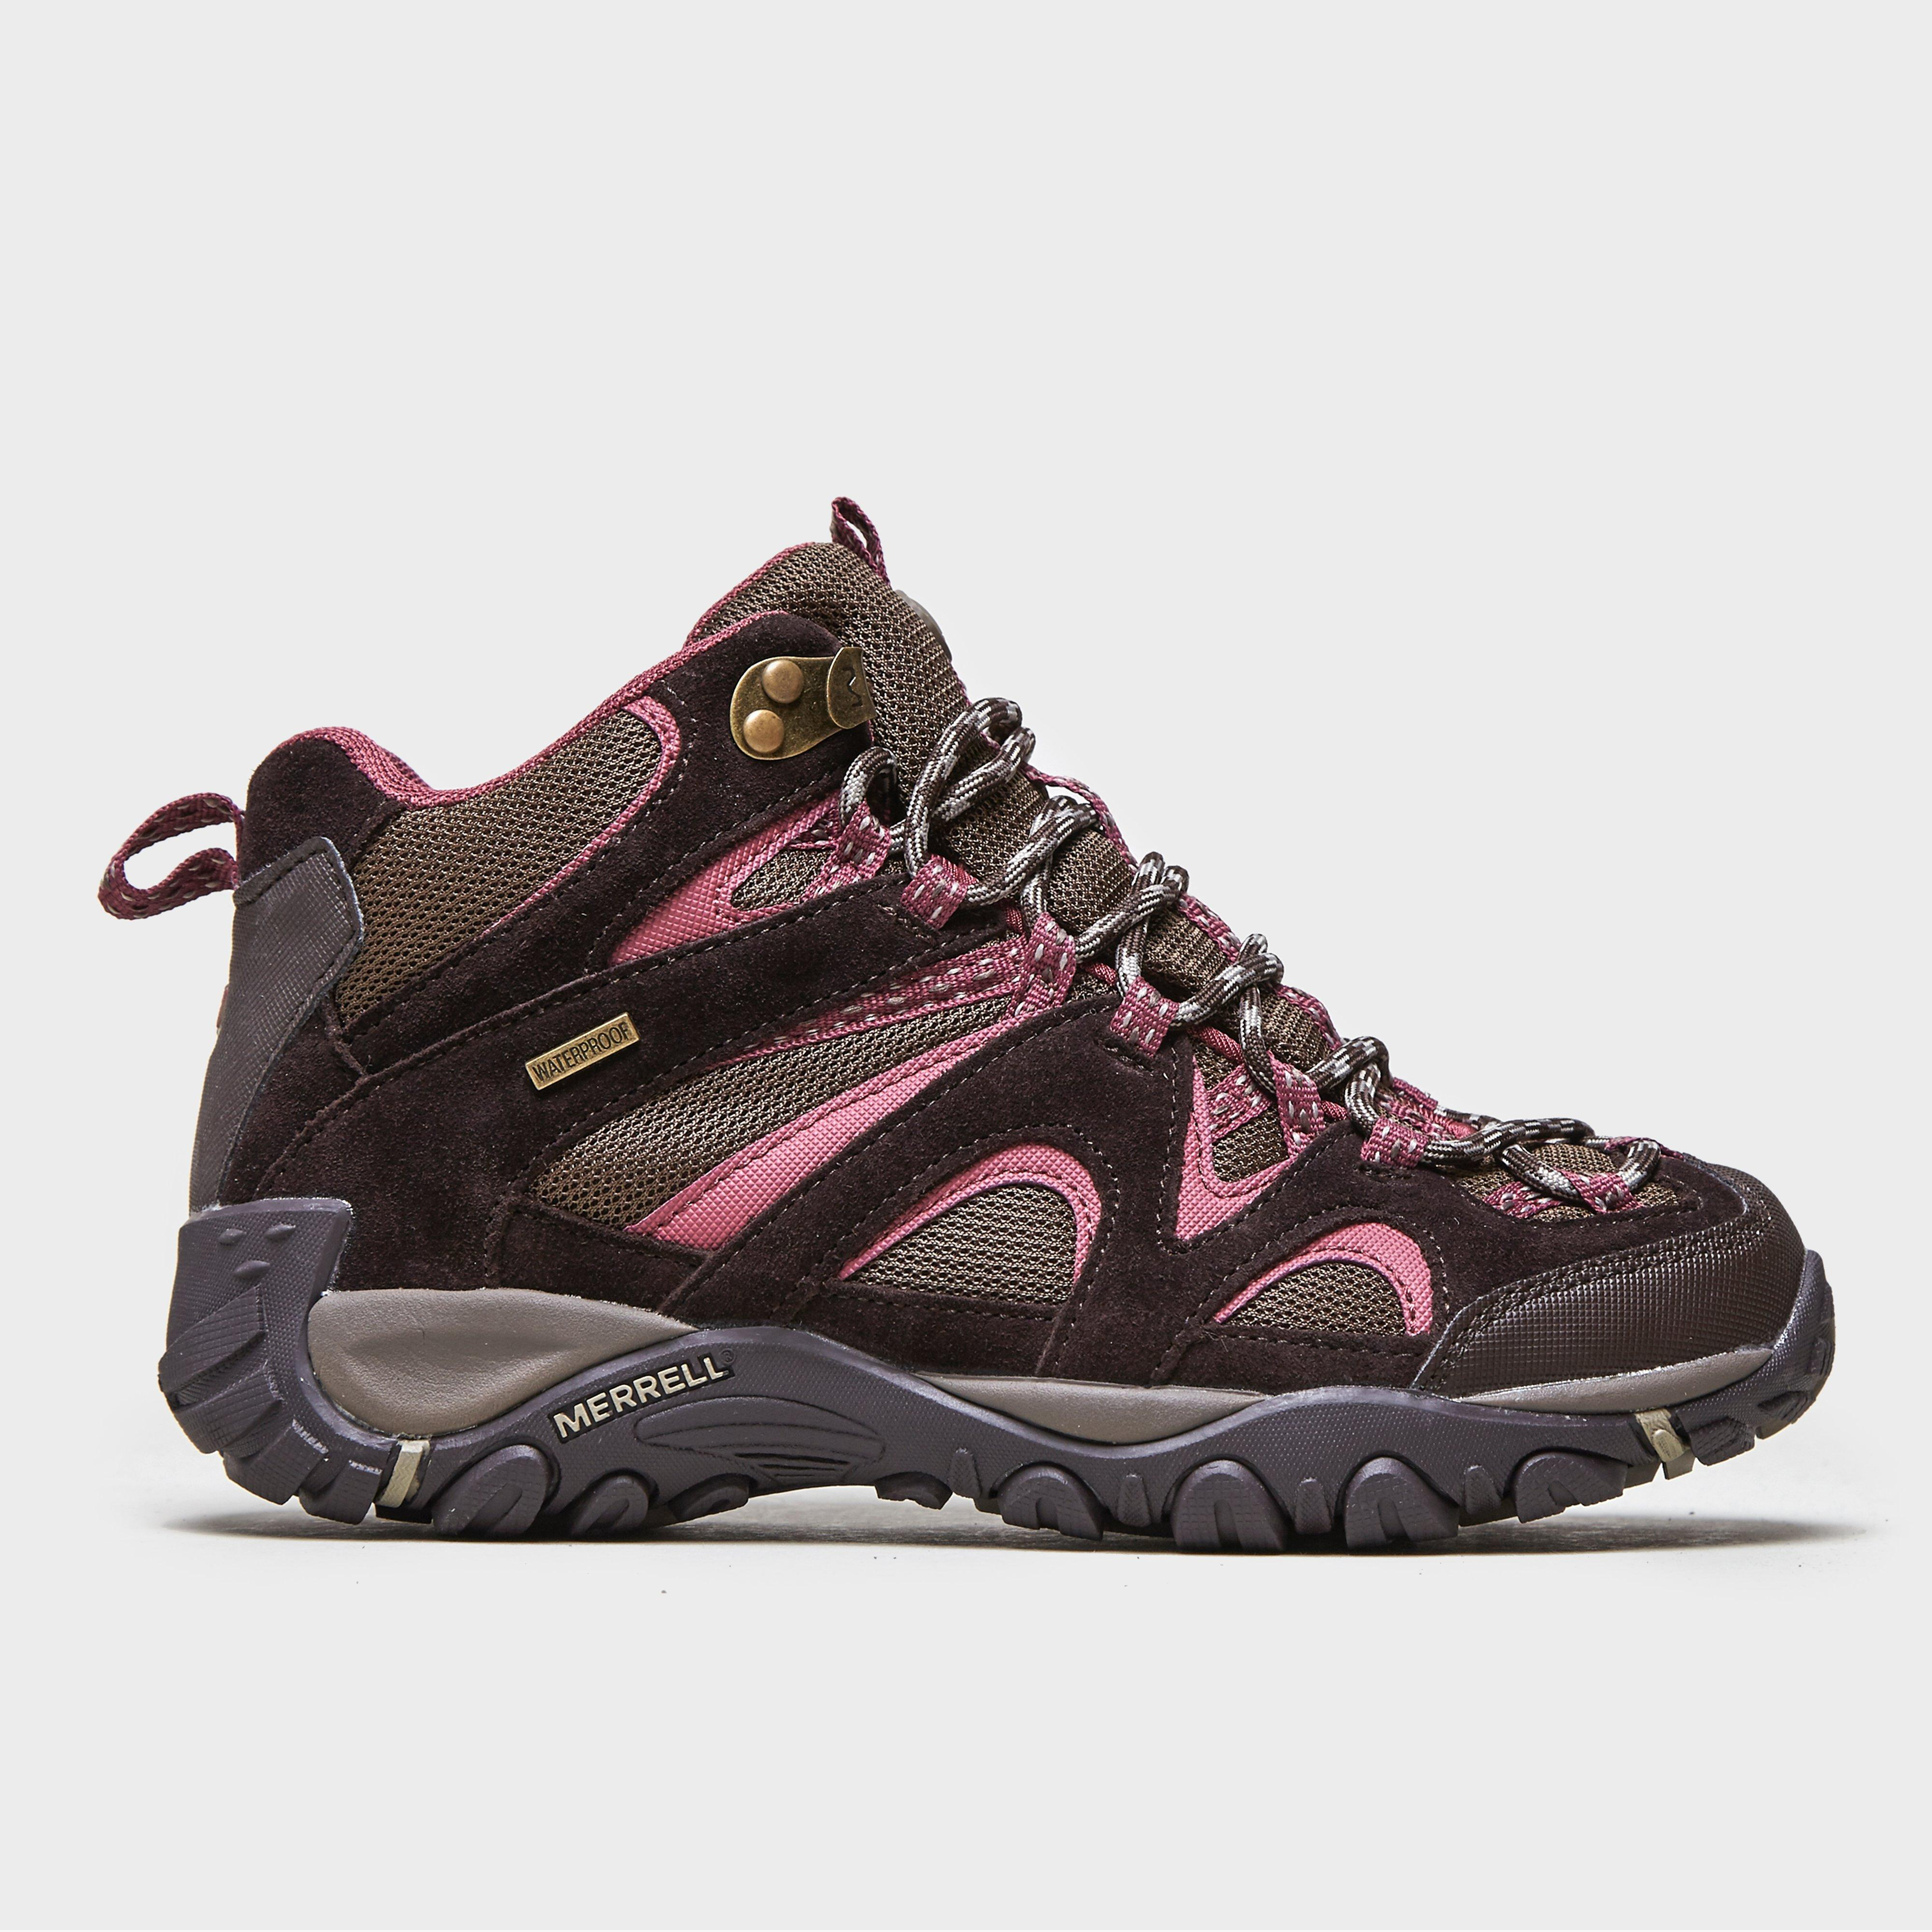 High fashion Merrell Womens Kalcite Waterproof Shoe I76j2977 Outlet Online